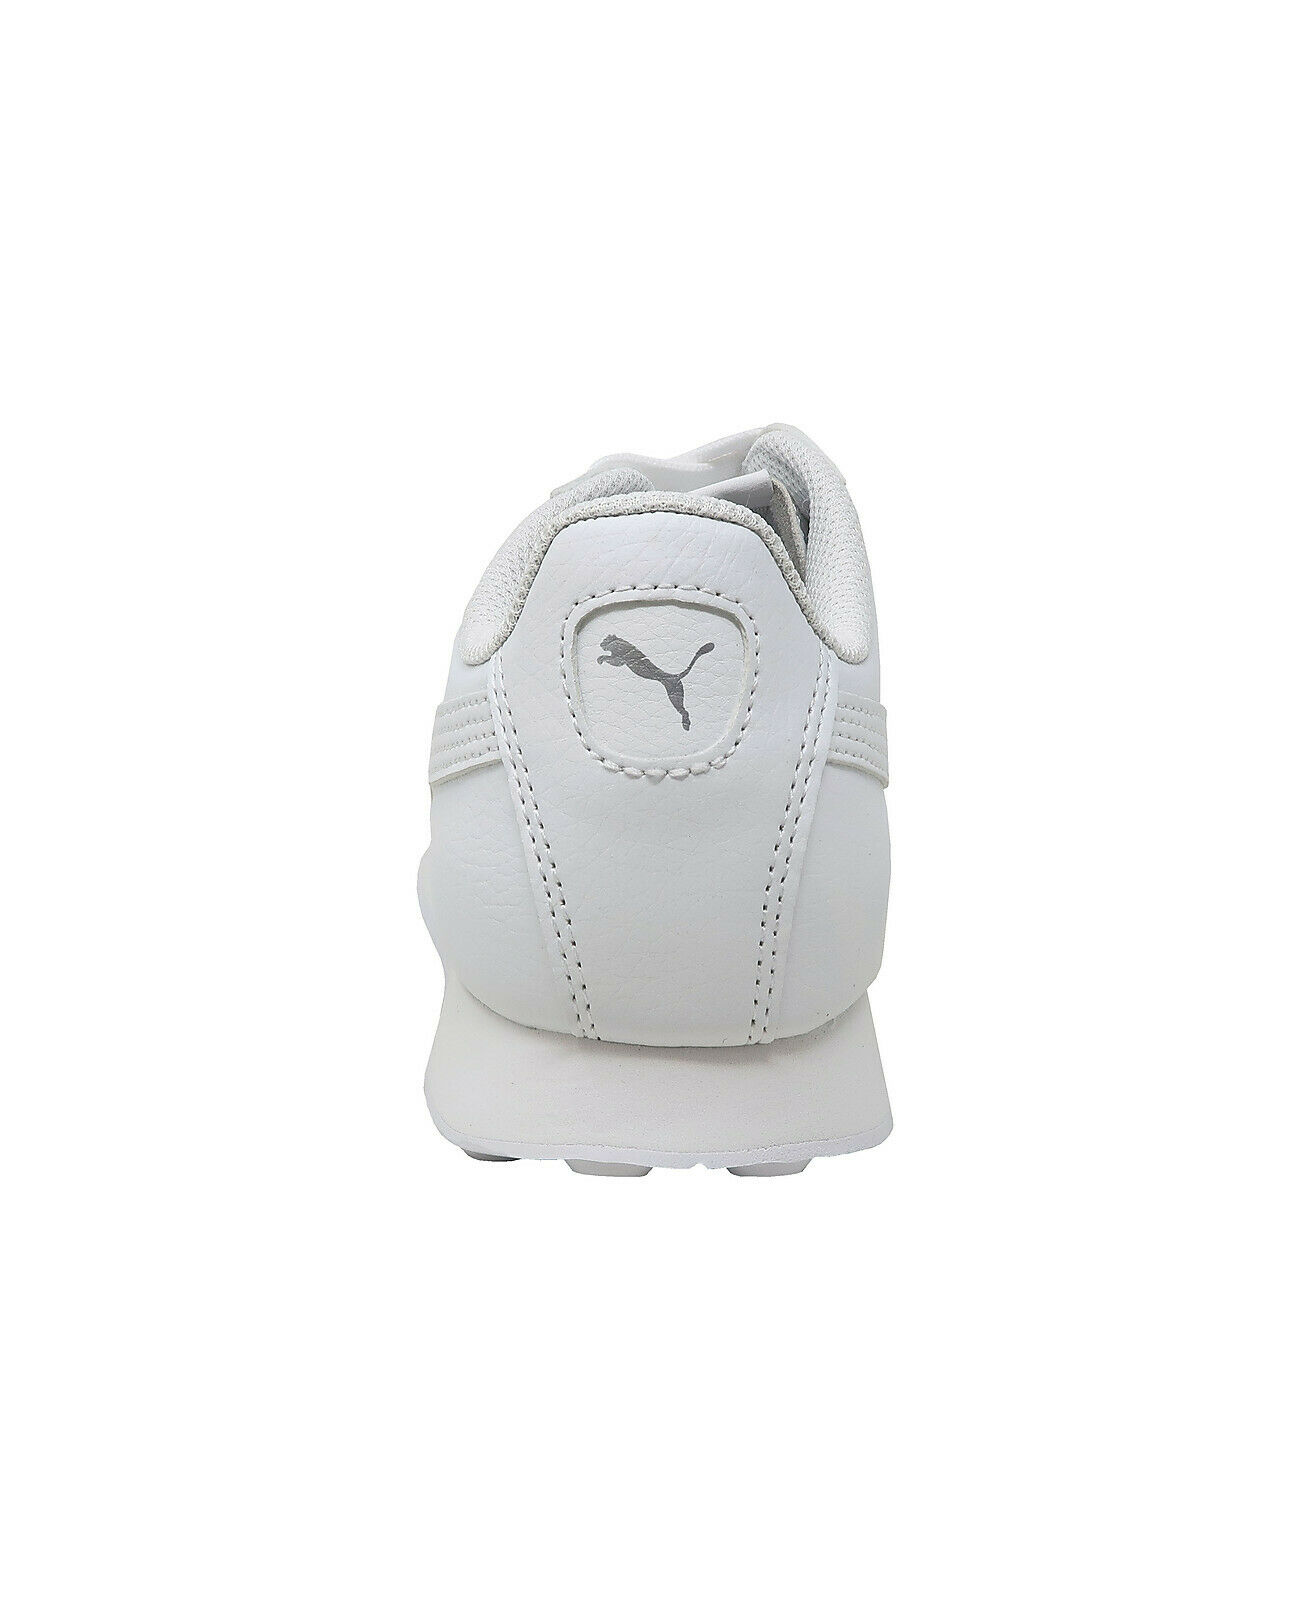 Puma Turin JR Blanc Cuir Synthétique à Lacets Lacets Lacets Fashion Kid Baskets Youth chaussures fc70fe